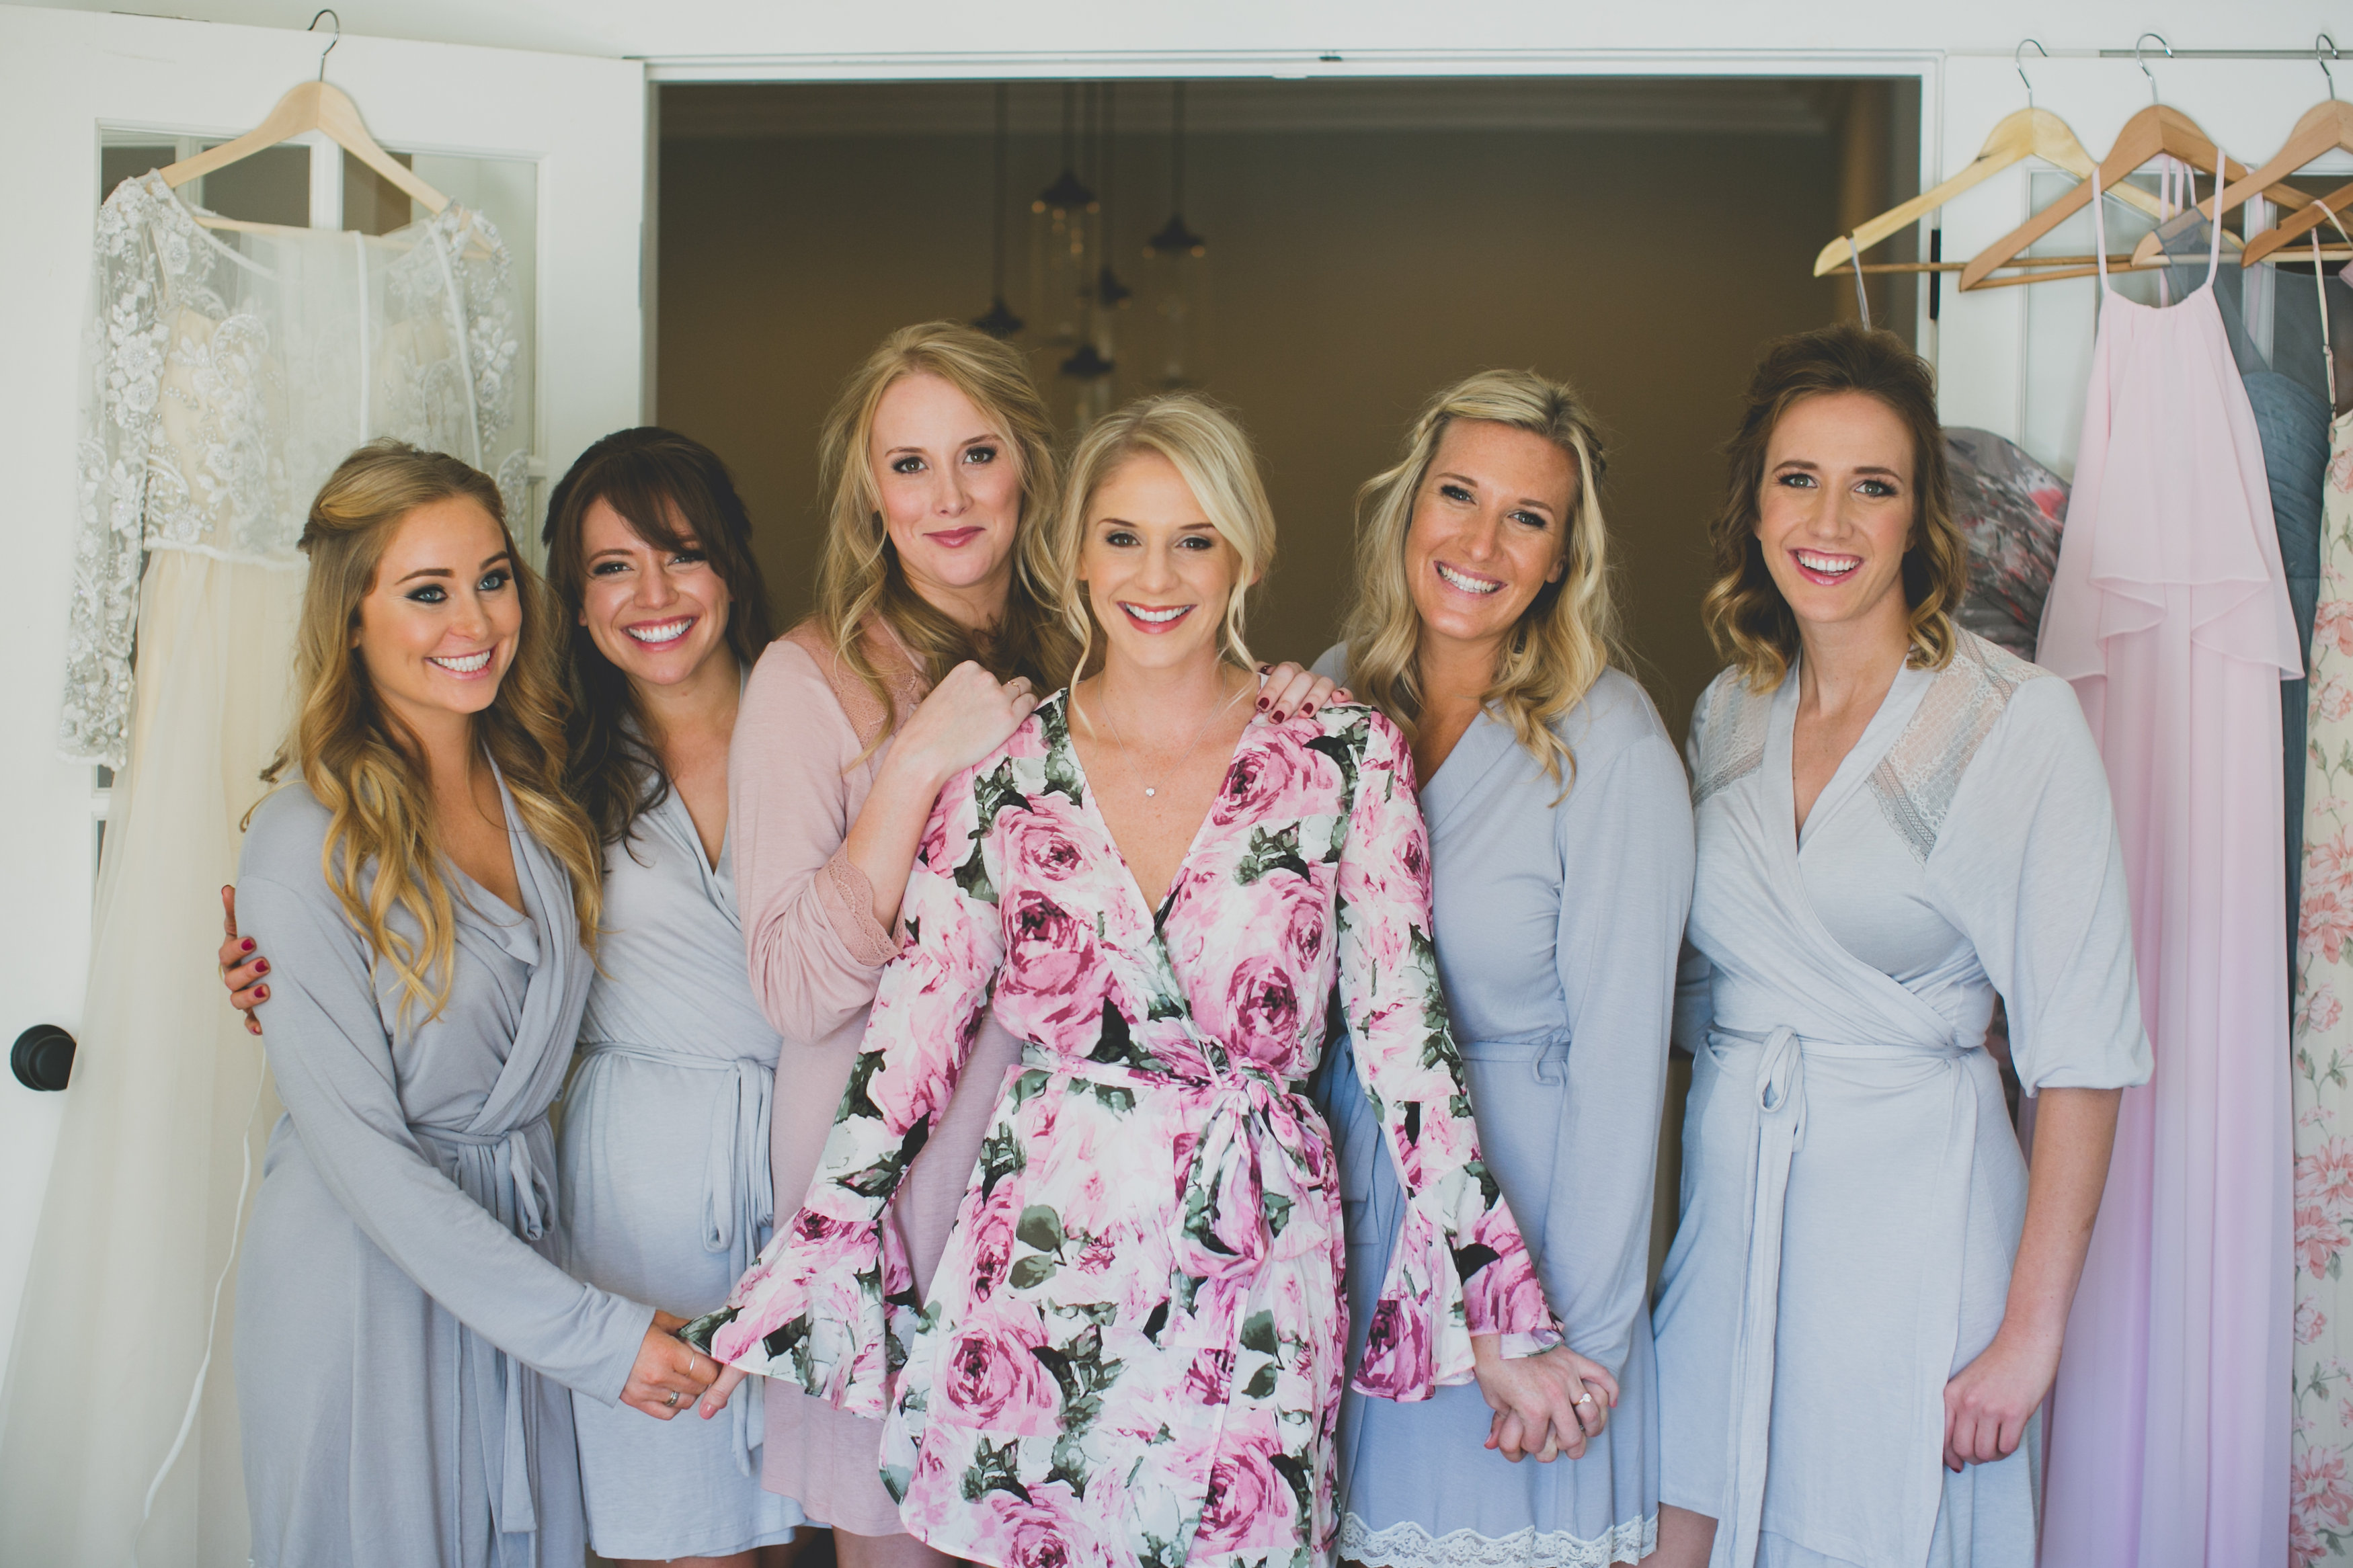 Experts Dish On Letting Your Bridesmaids Choose Their Looks